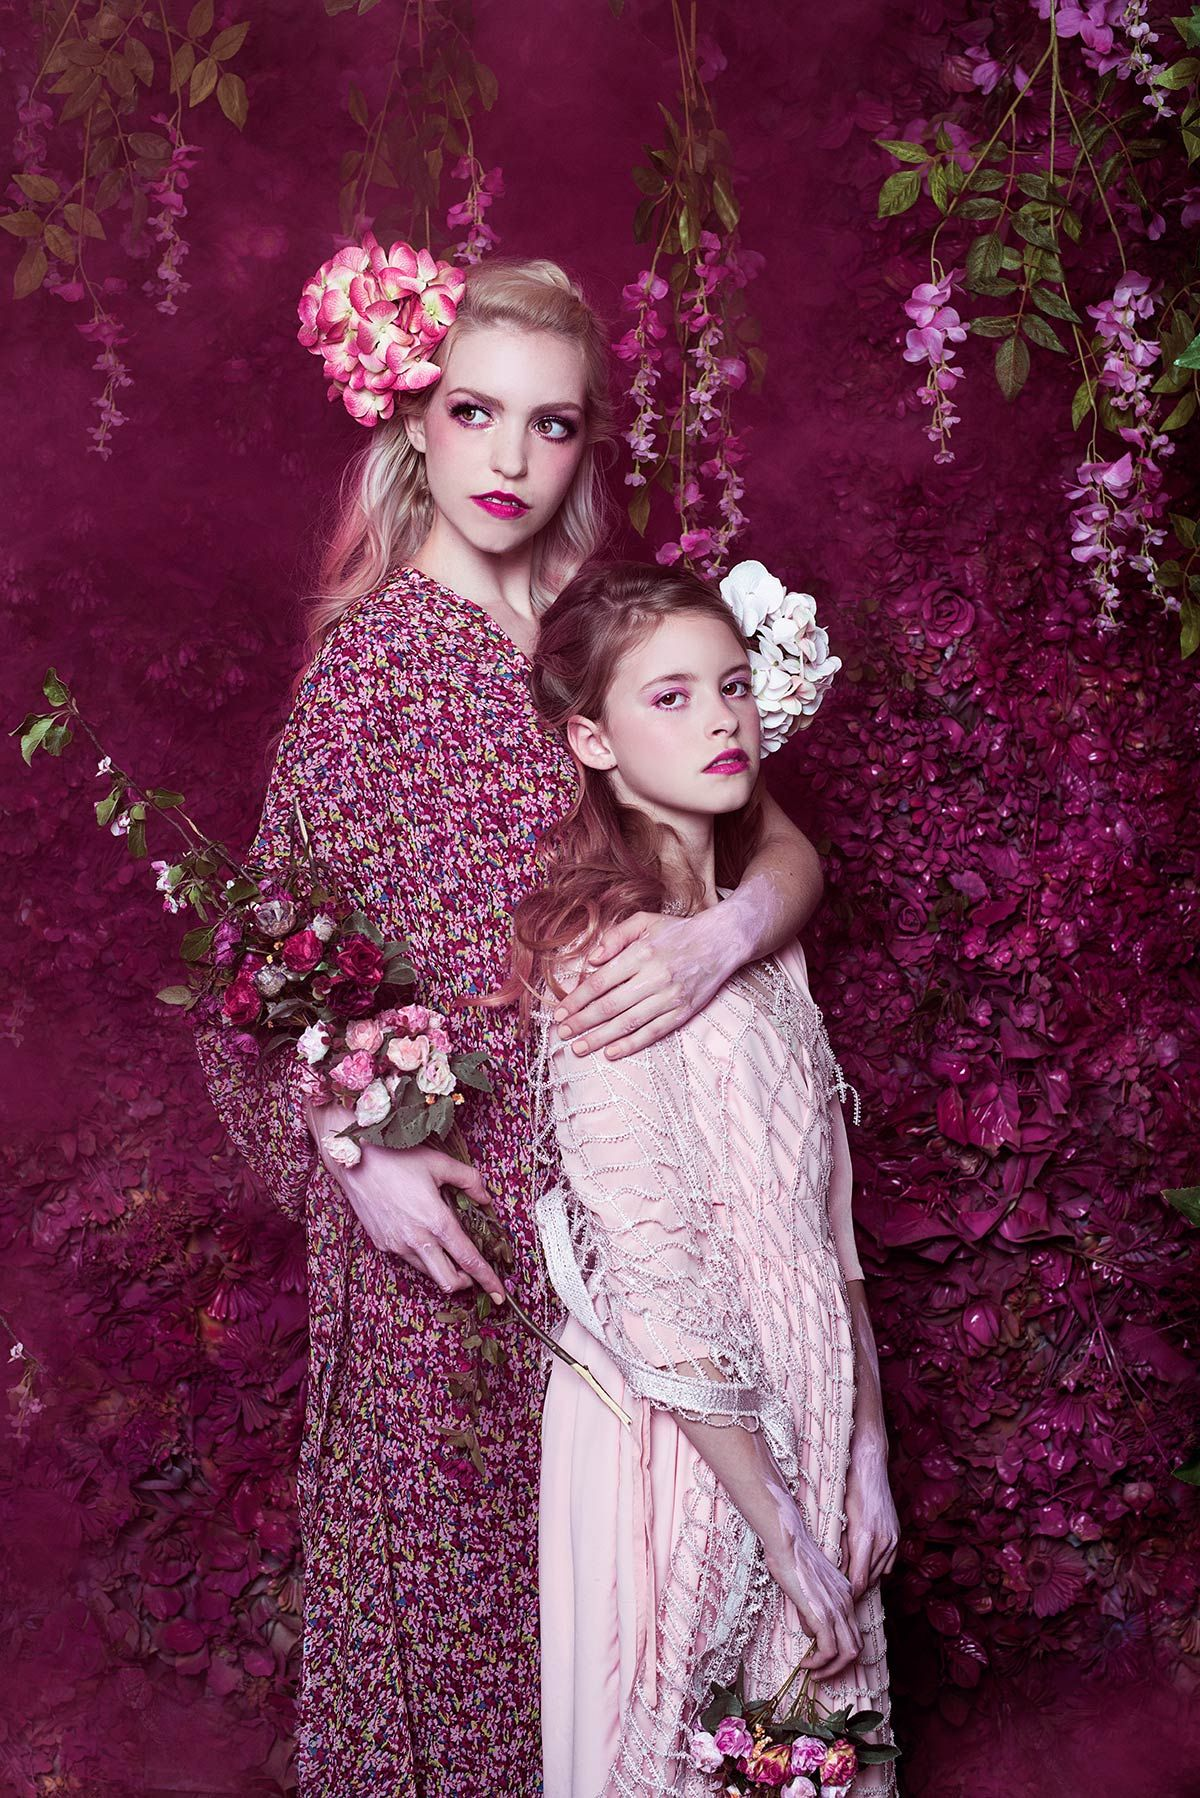 Daniela Majic's The Secret Garden series.. www